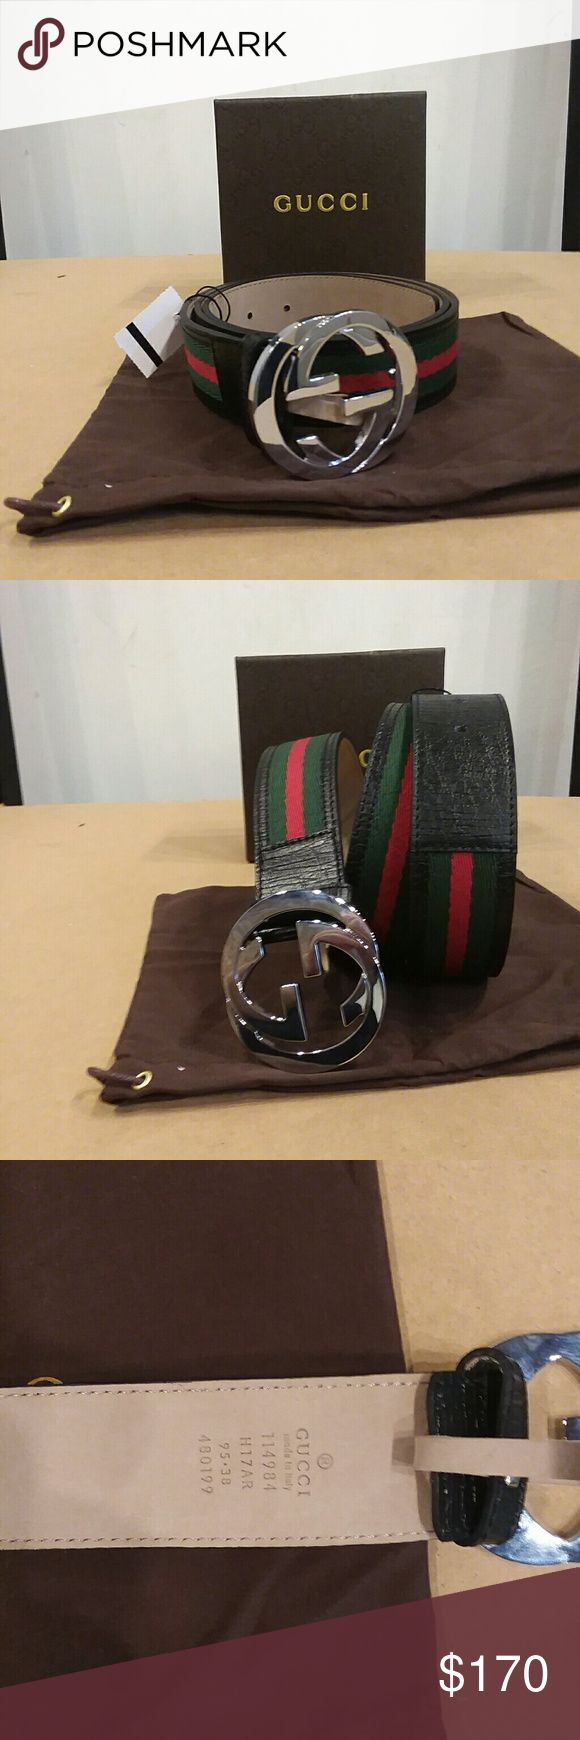 NET Gucci awesome belt This new Gucci belt is great for all occasions 100 authentic or money back guarantee Unisex. Brand new Comes with the box, tags and dust bag Gucci Accessories Belts